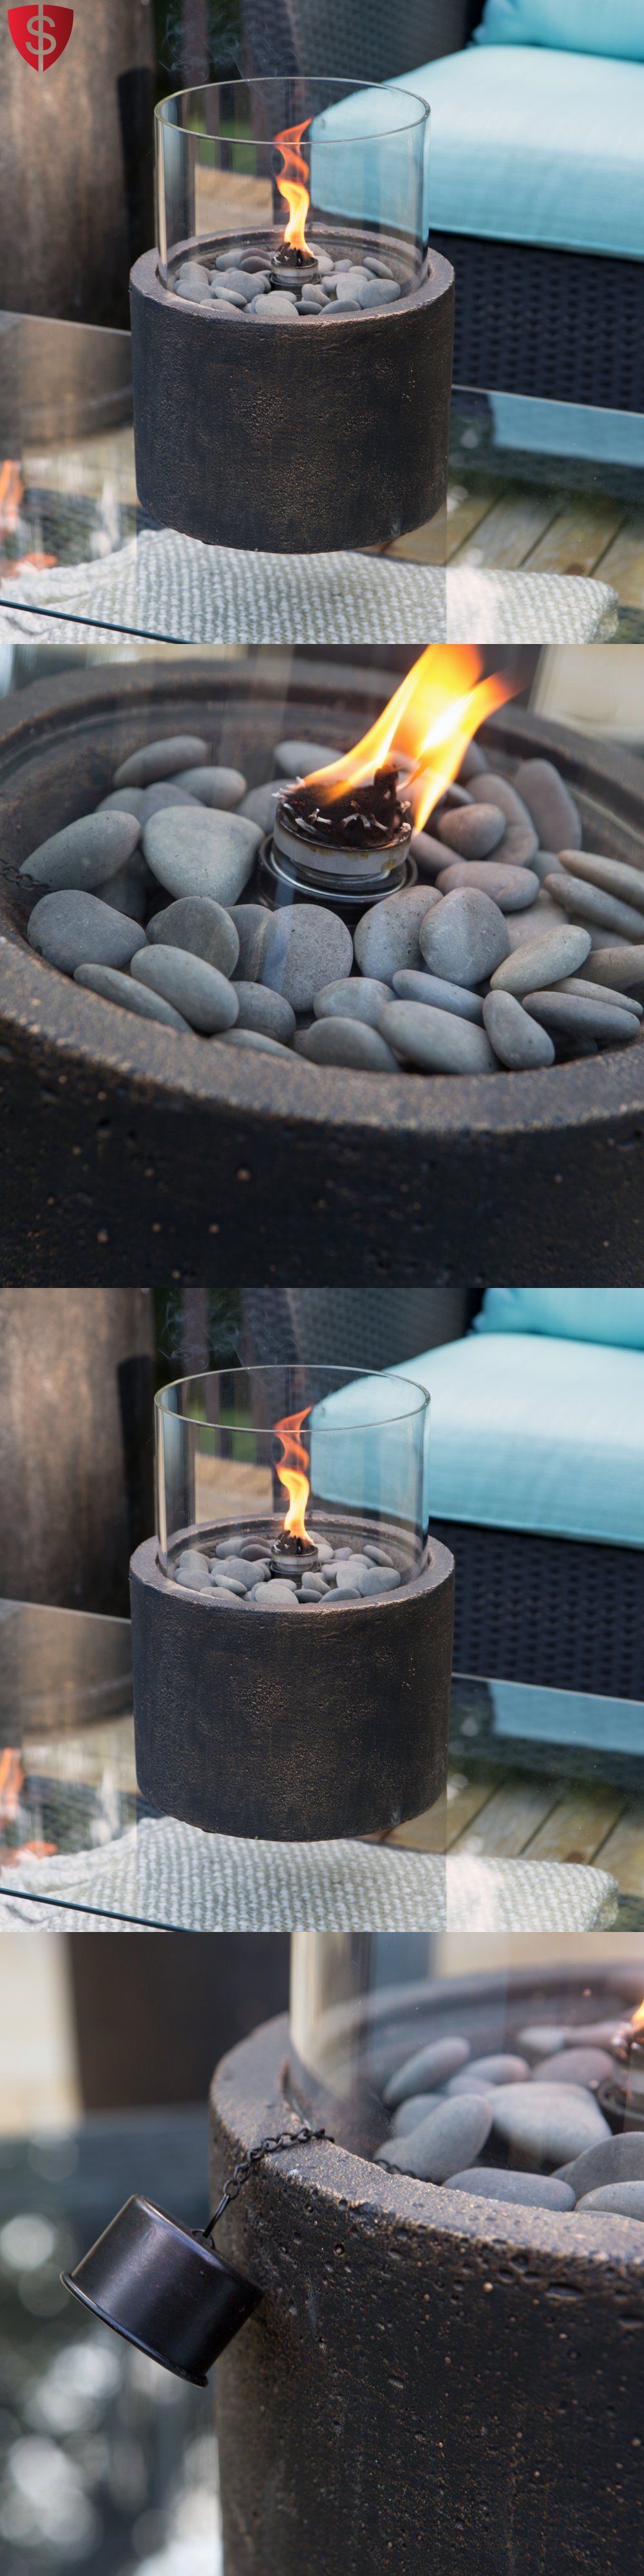 fire pits and chimineas 85916 table top fire bowl outdoor heater